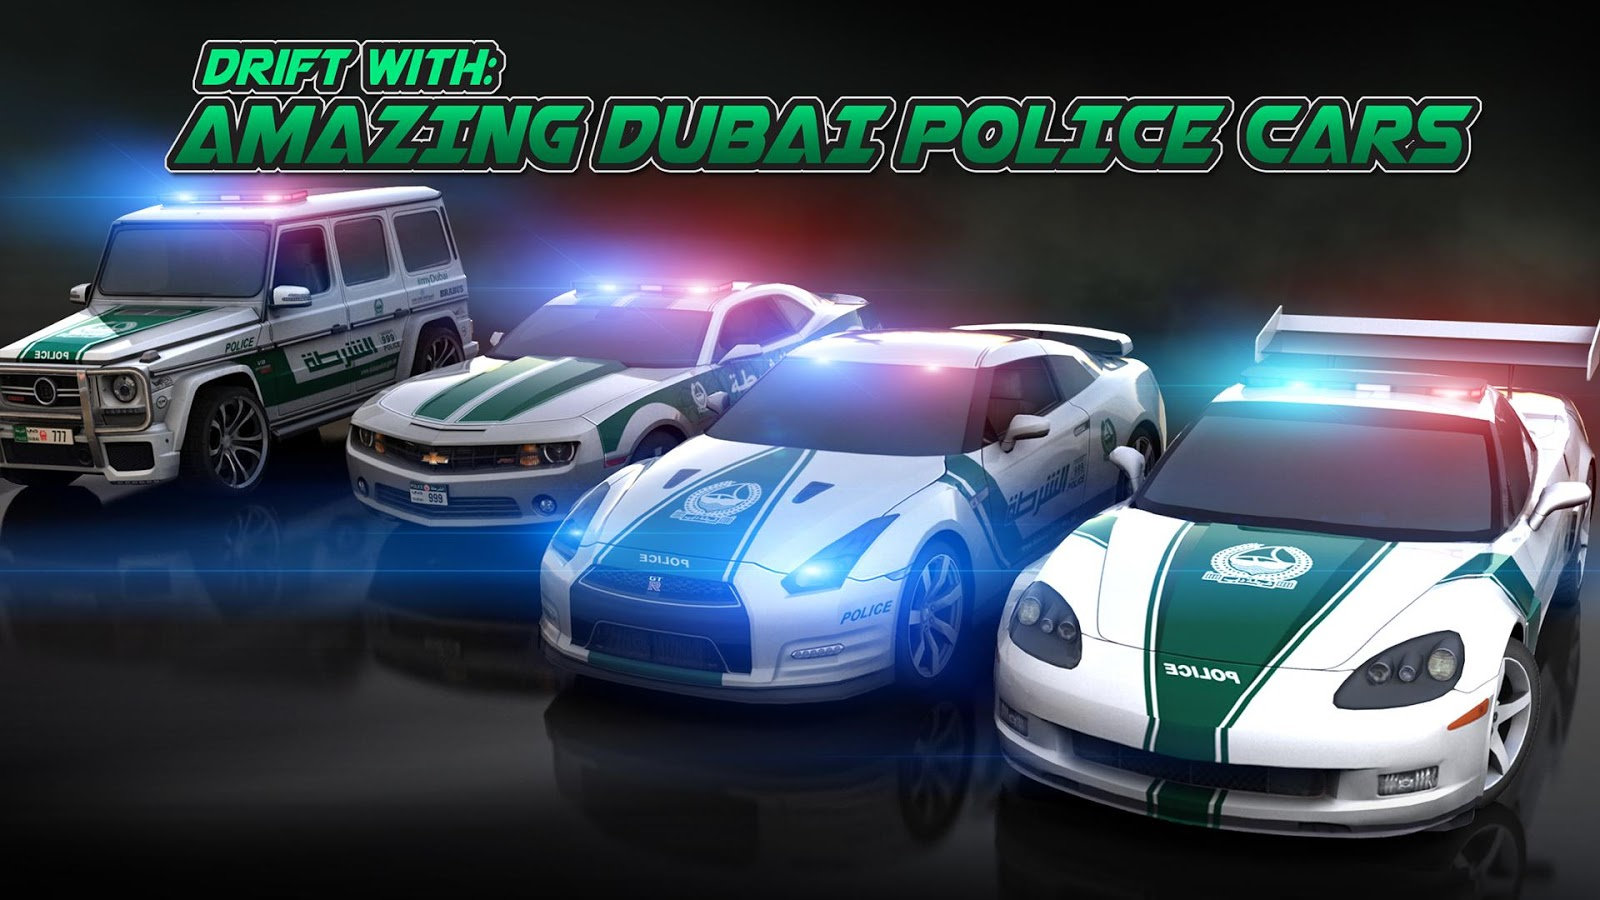 Dubai racing no wifi games for android phone